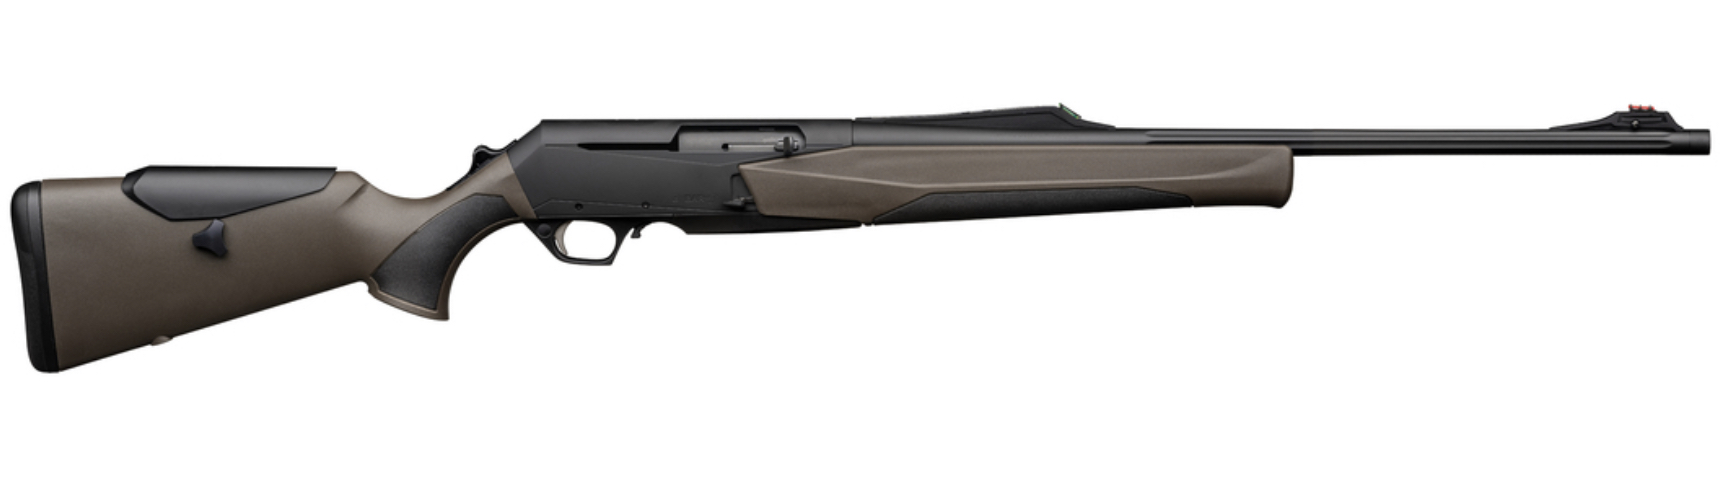 Browning Bar mk3 Disponibili in negozio